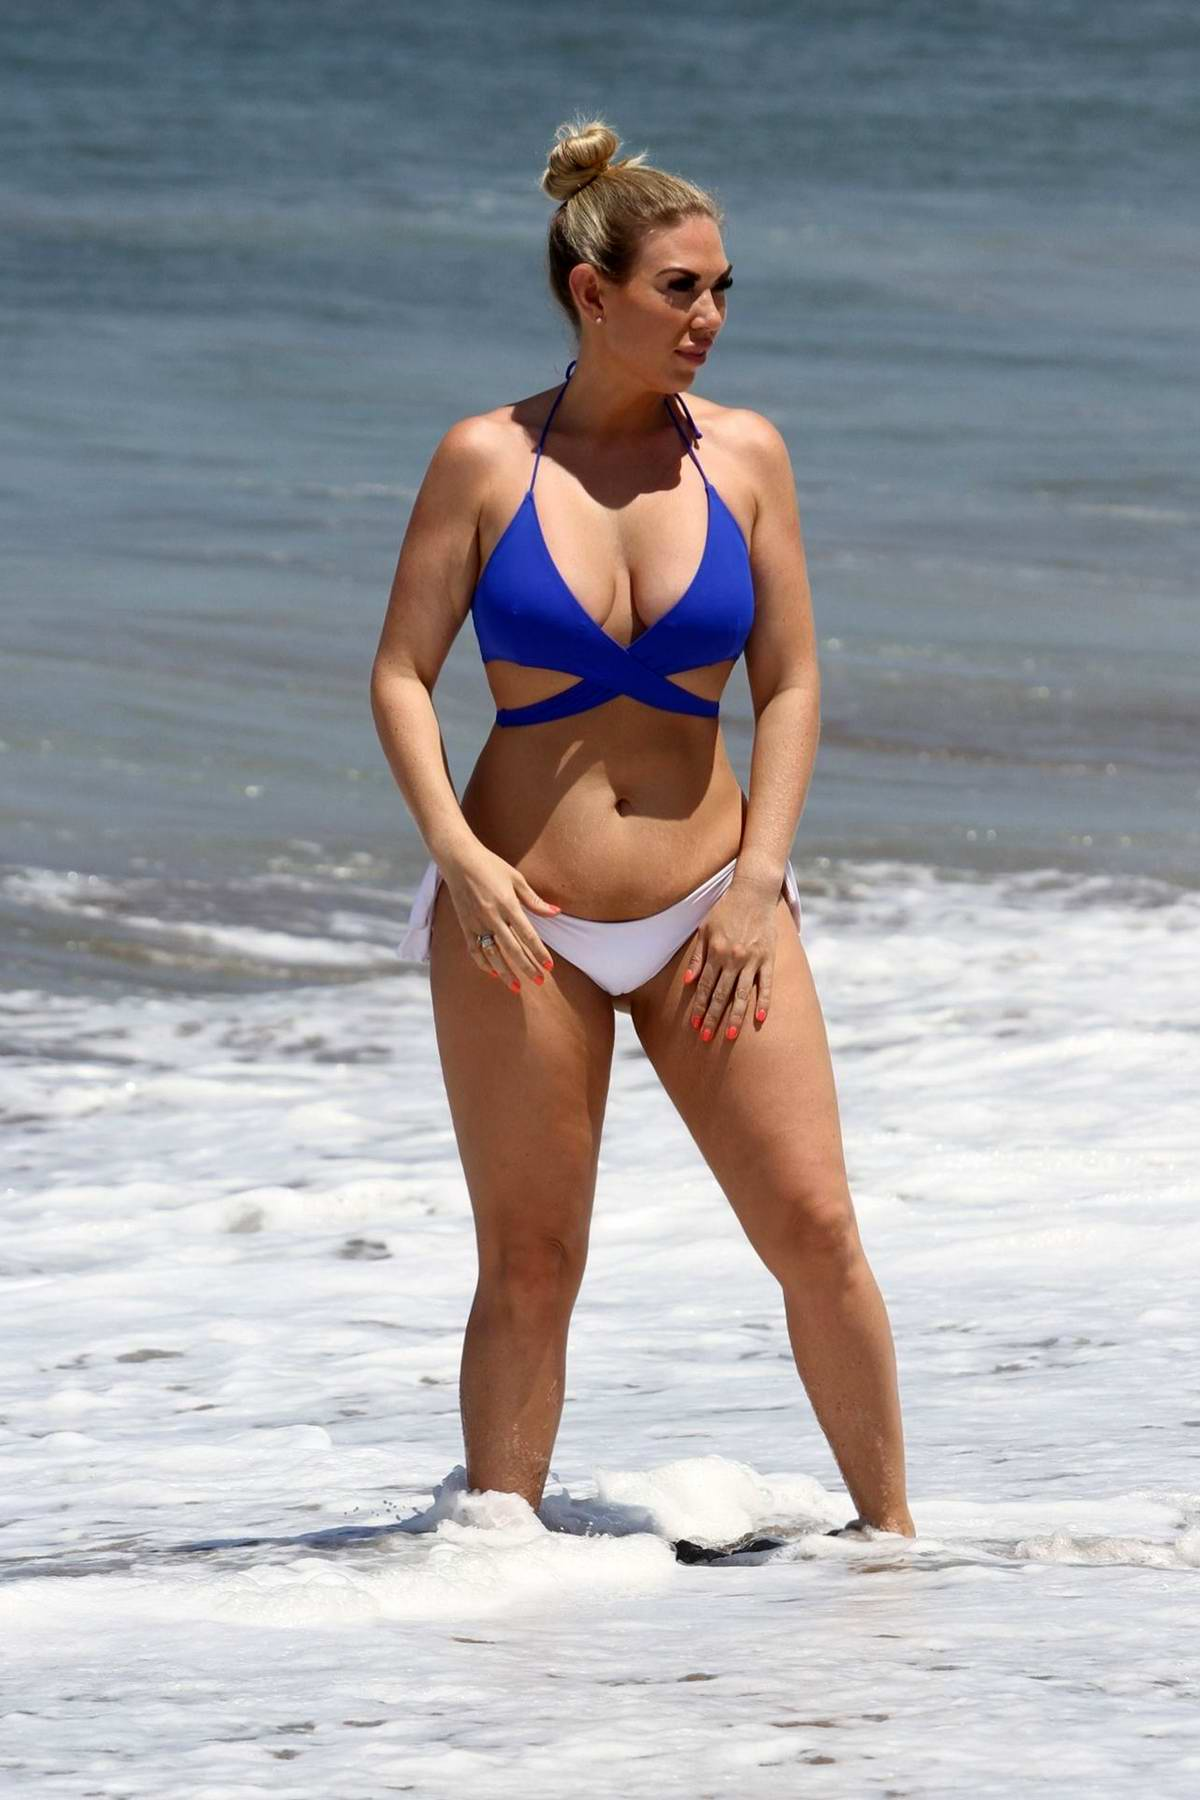 Frankie Essex seen wearing blue and white bikini at the beach while holidaying in Tenerife, Spain